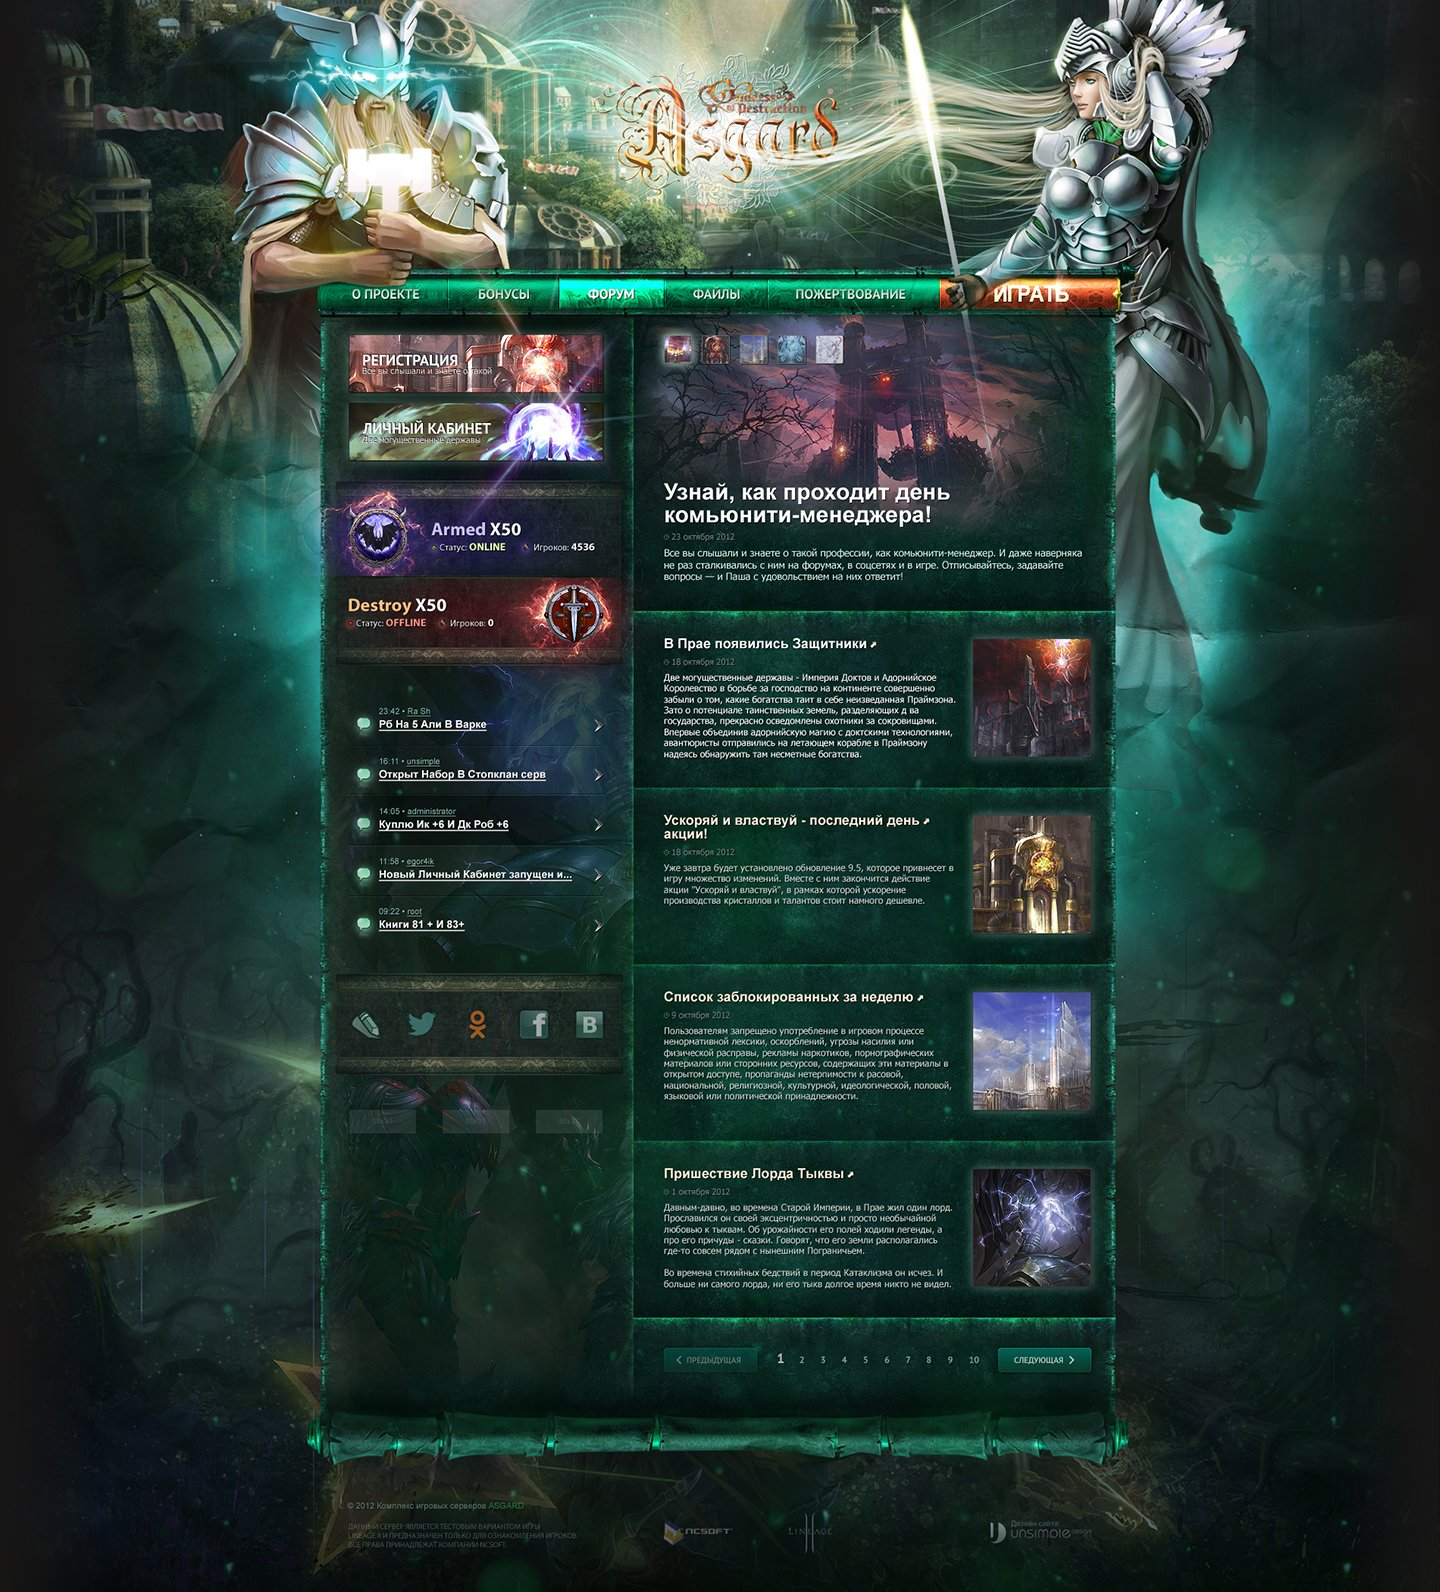 Asgard > Website for Lineage 2 private server. Main page